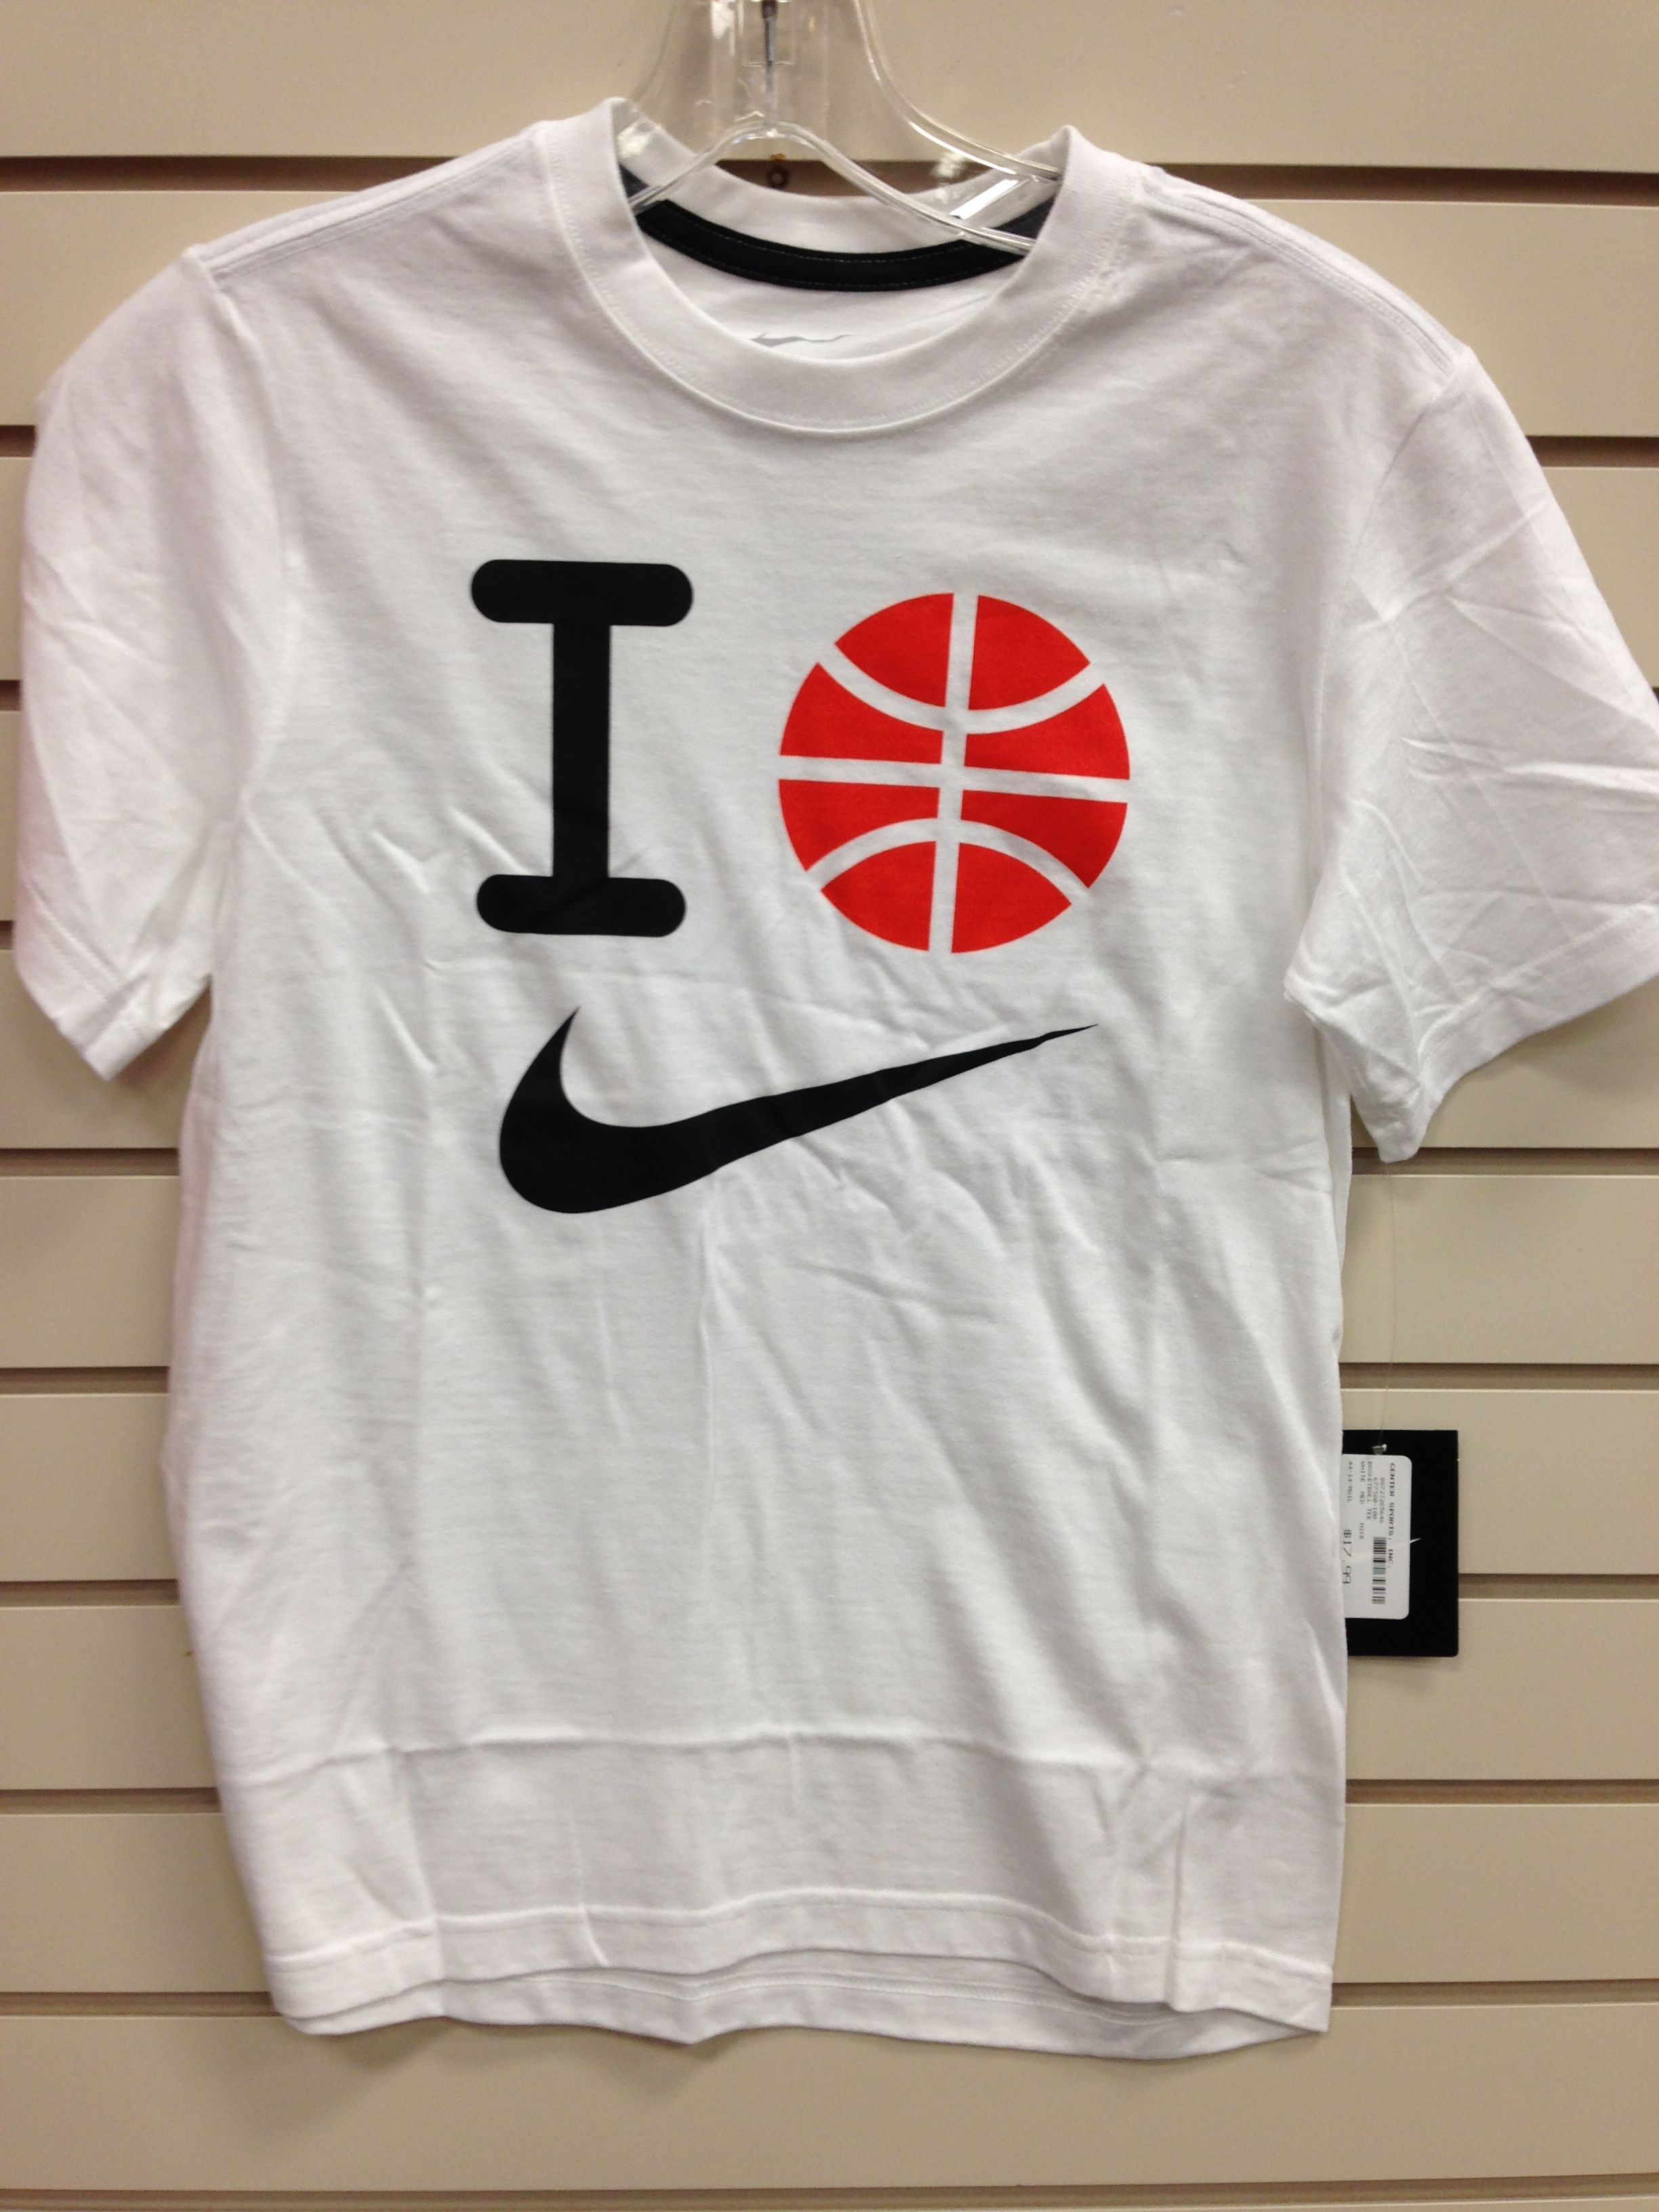 bd1eaffb22f3 Youth Nike T-Shirt